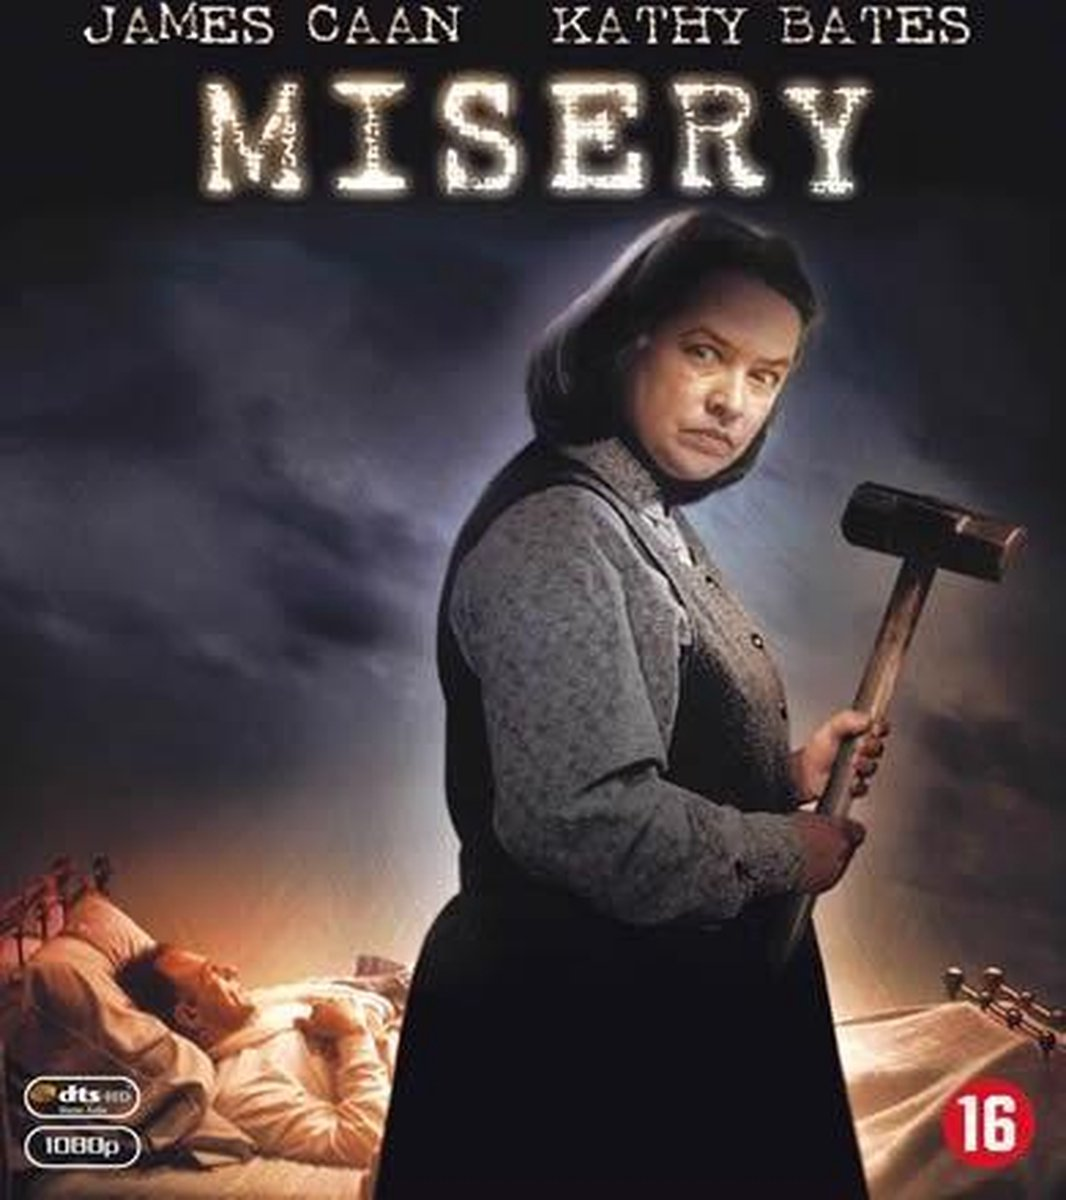 Misery (Blu-ray) - Movie